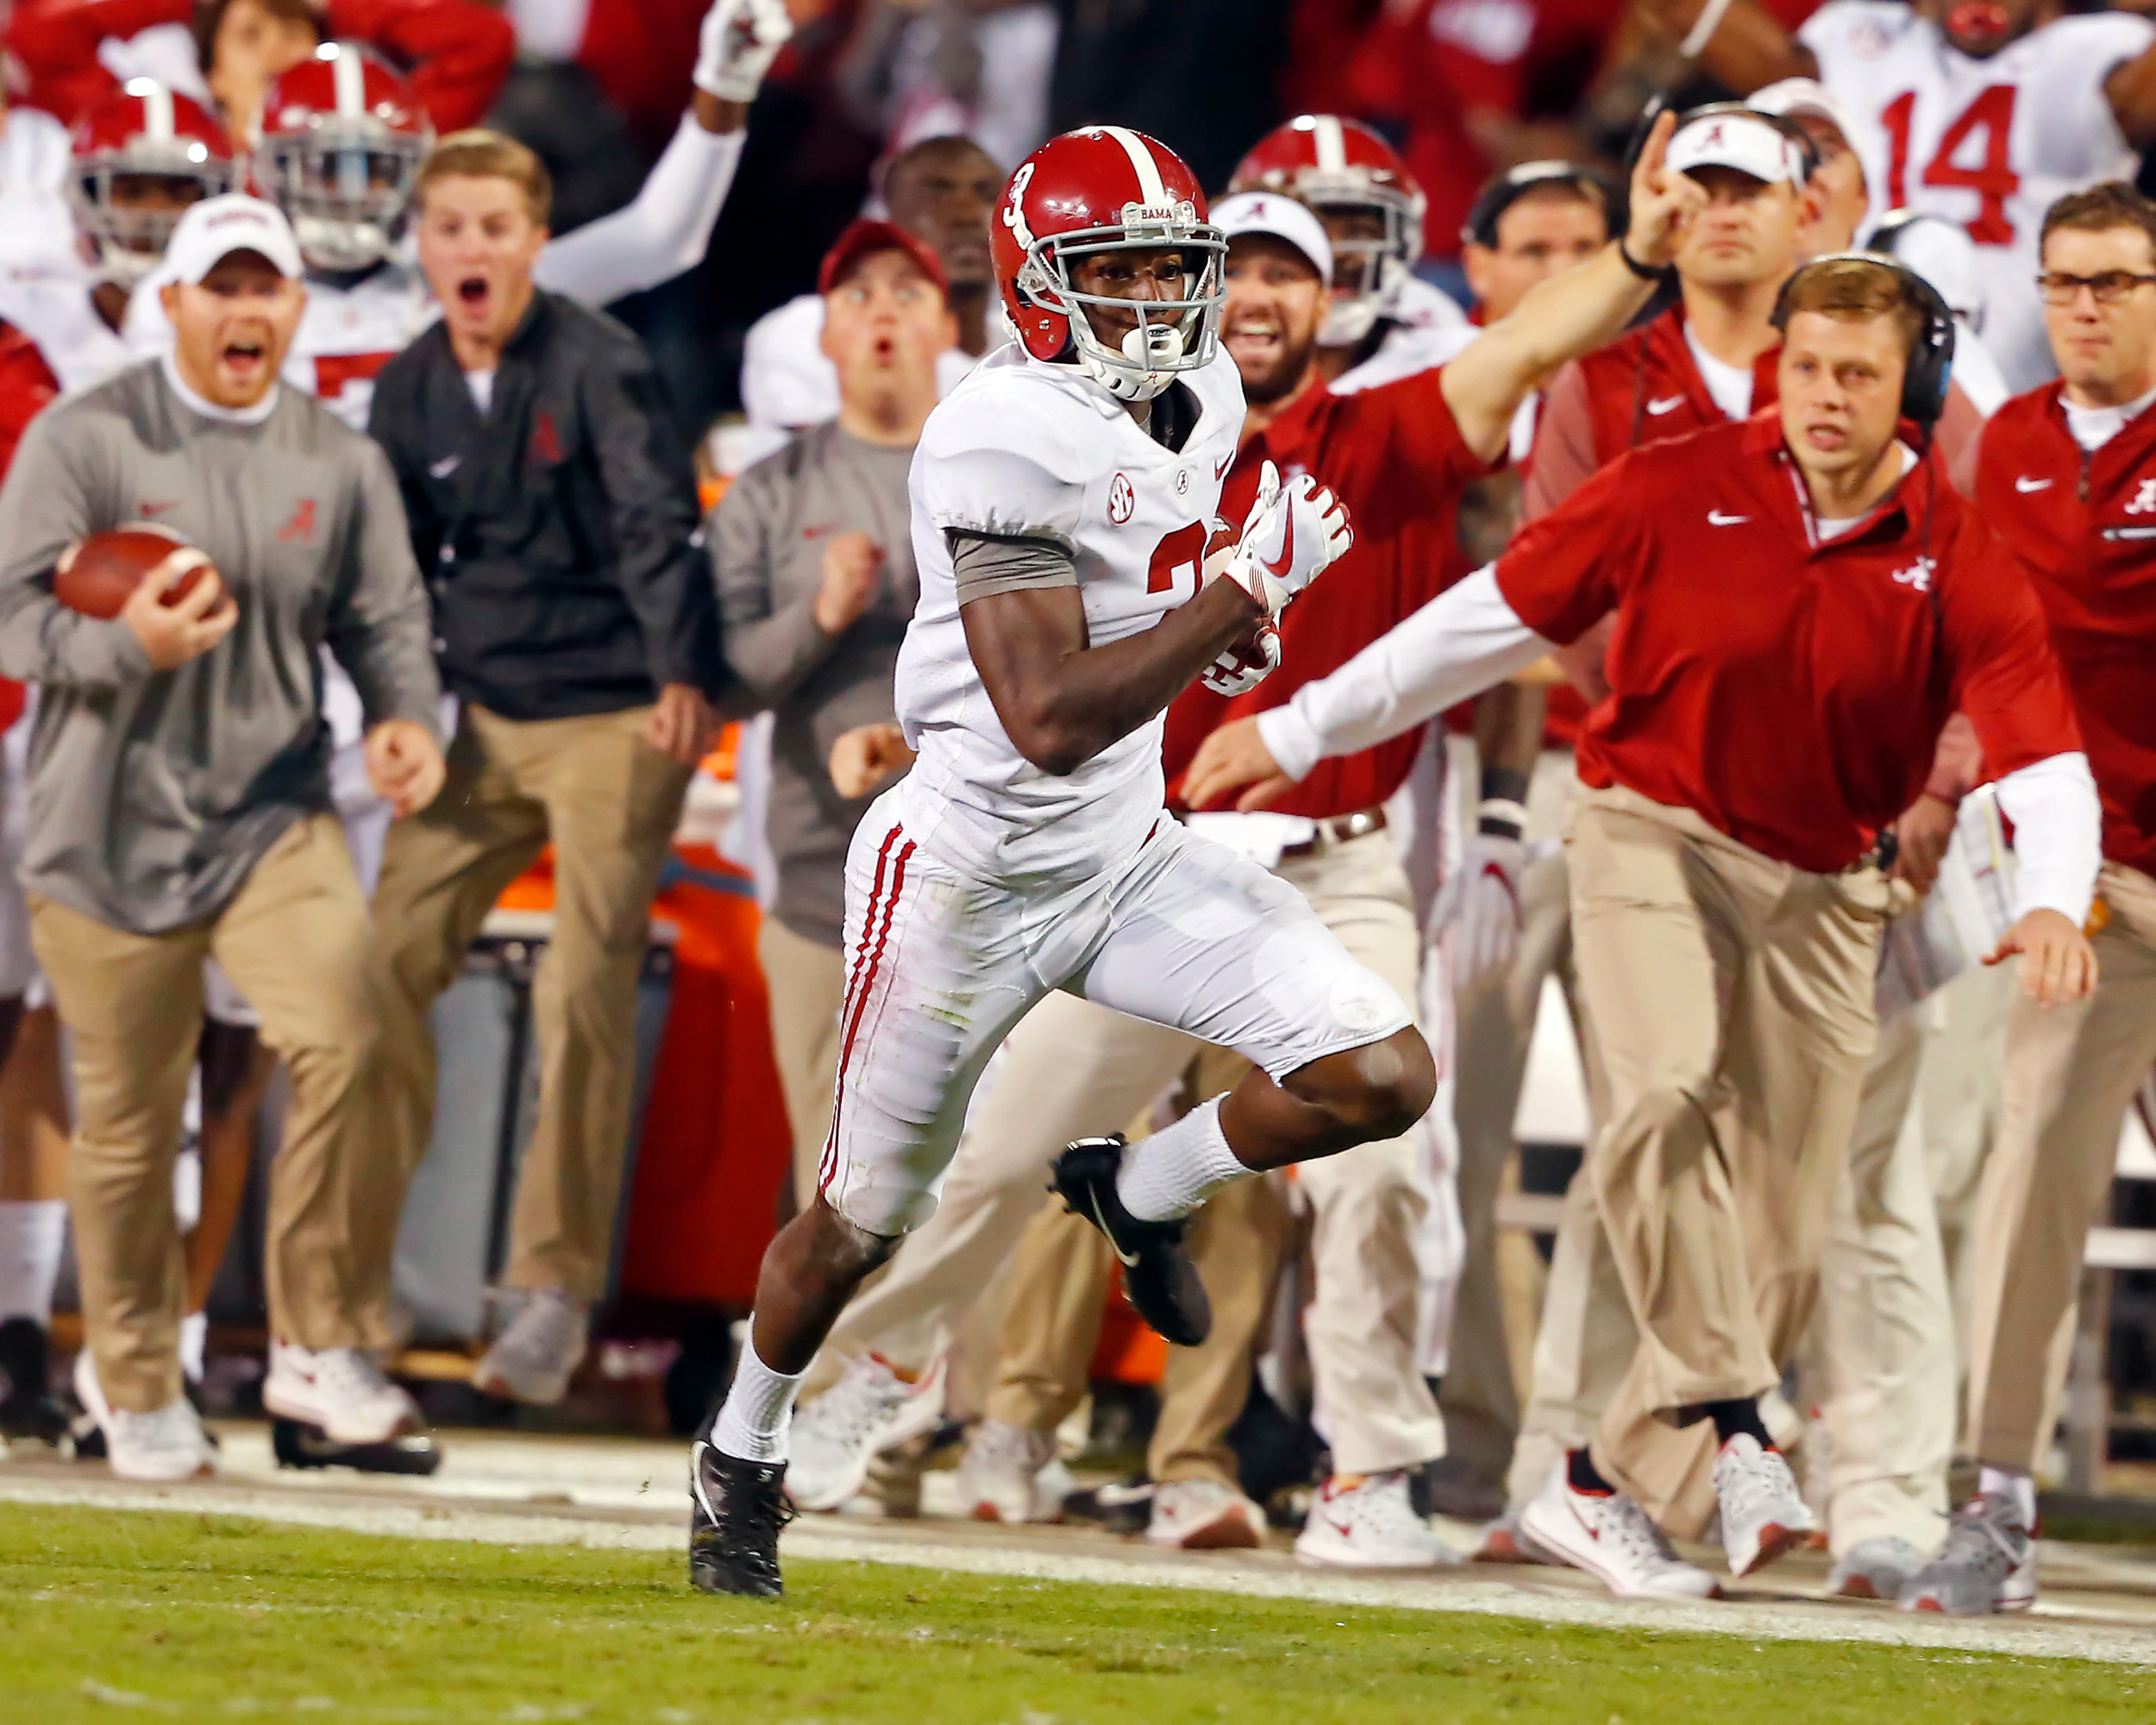 Alabama's Calvin Ridley (3) makes a big gain after catching a pass from Jalen Hurts in the fourth quarter on Saturday. The Tide beat Mississippi State 31-24 in Starkville, Miss.